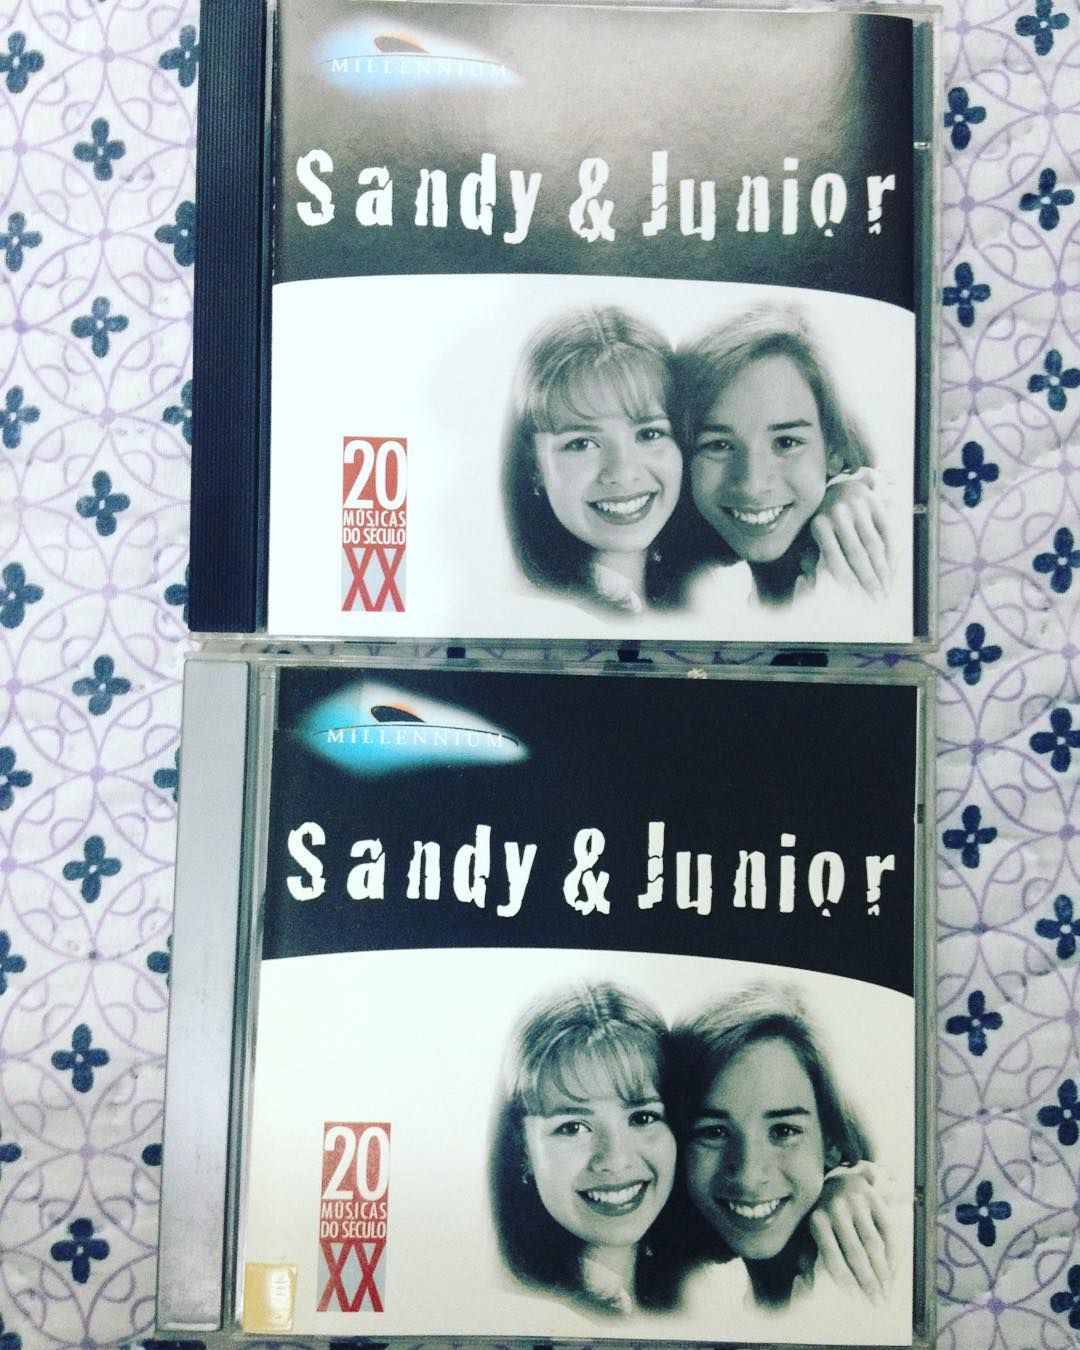 DOWNLOAD MANUSCRITO VIVO CD SANDY GRATUITO LEAH AO